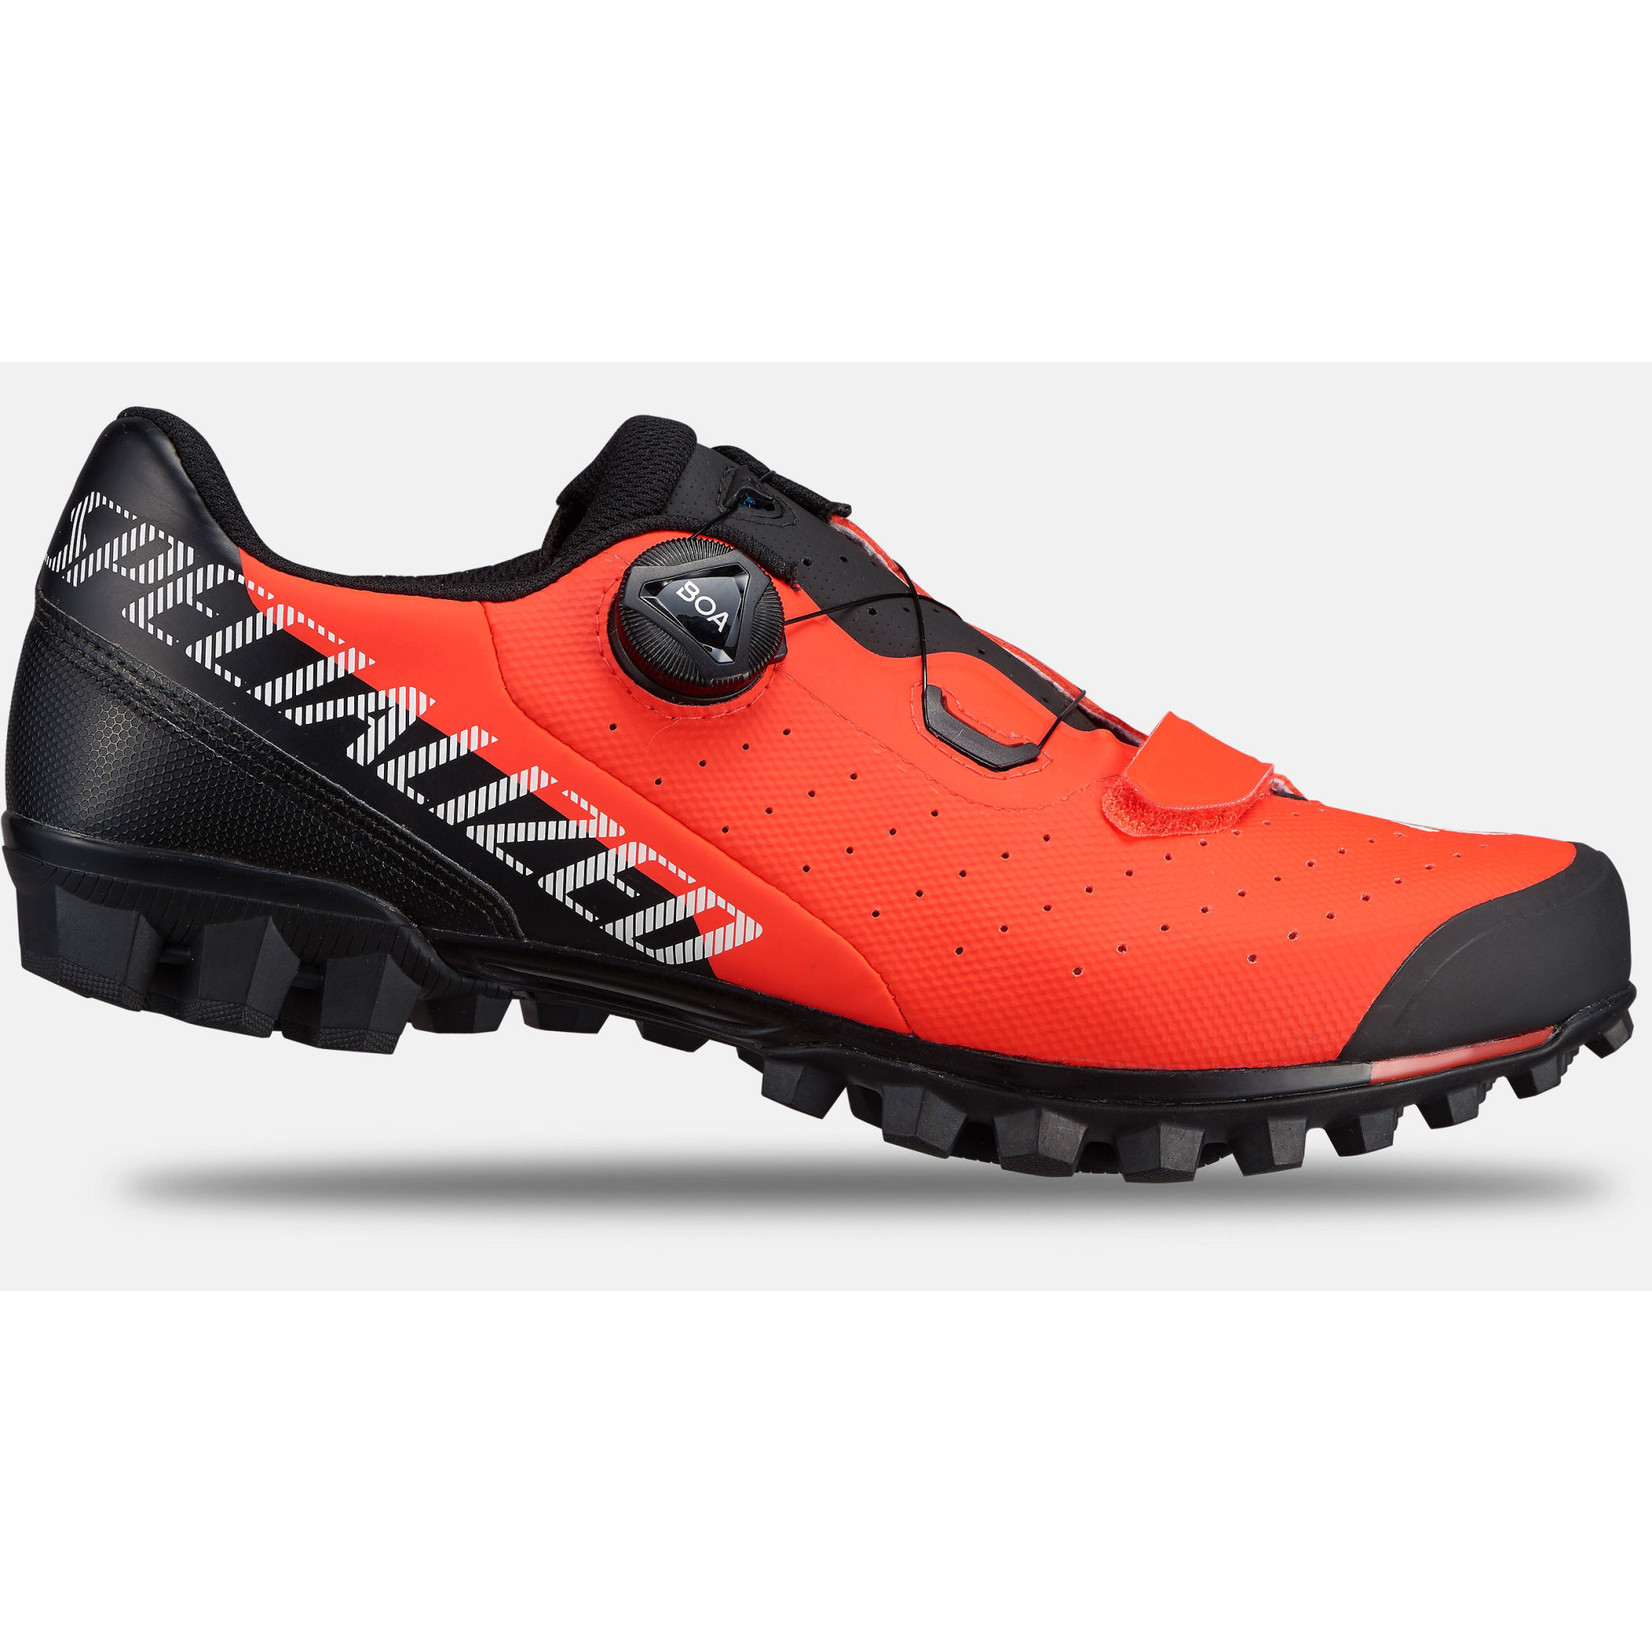 Specialized Specialized Recon 2.0 Shoes